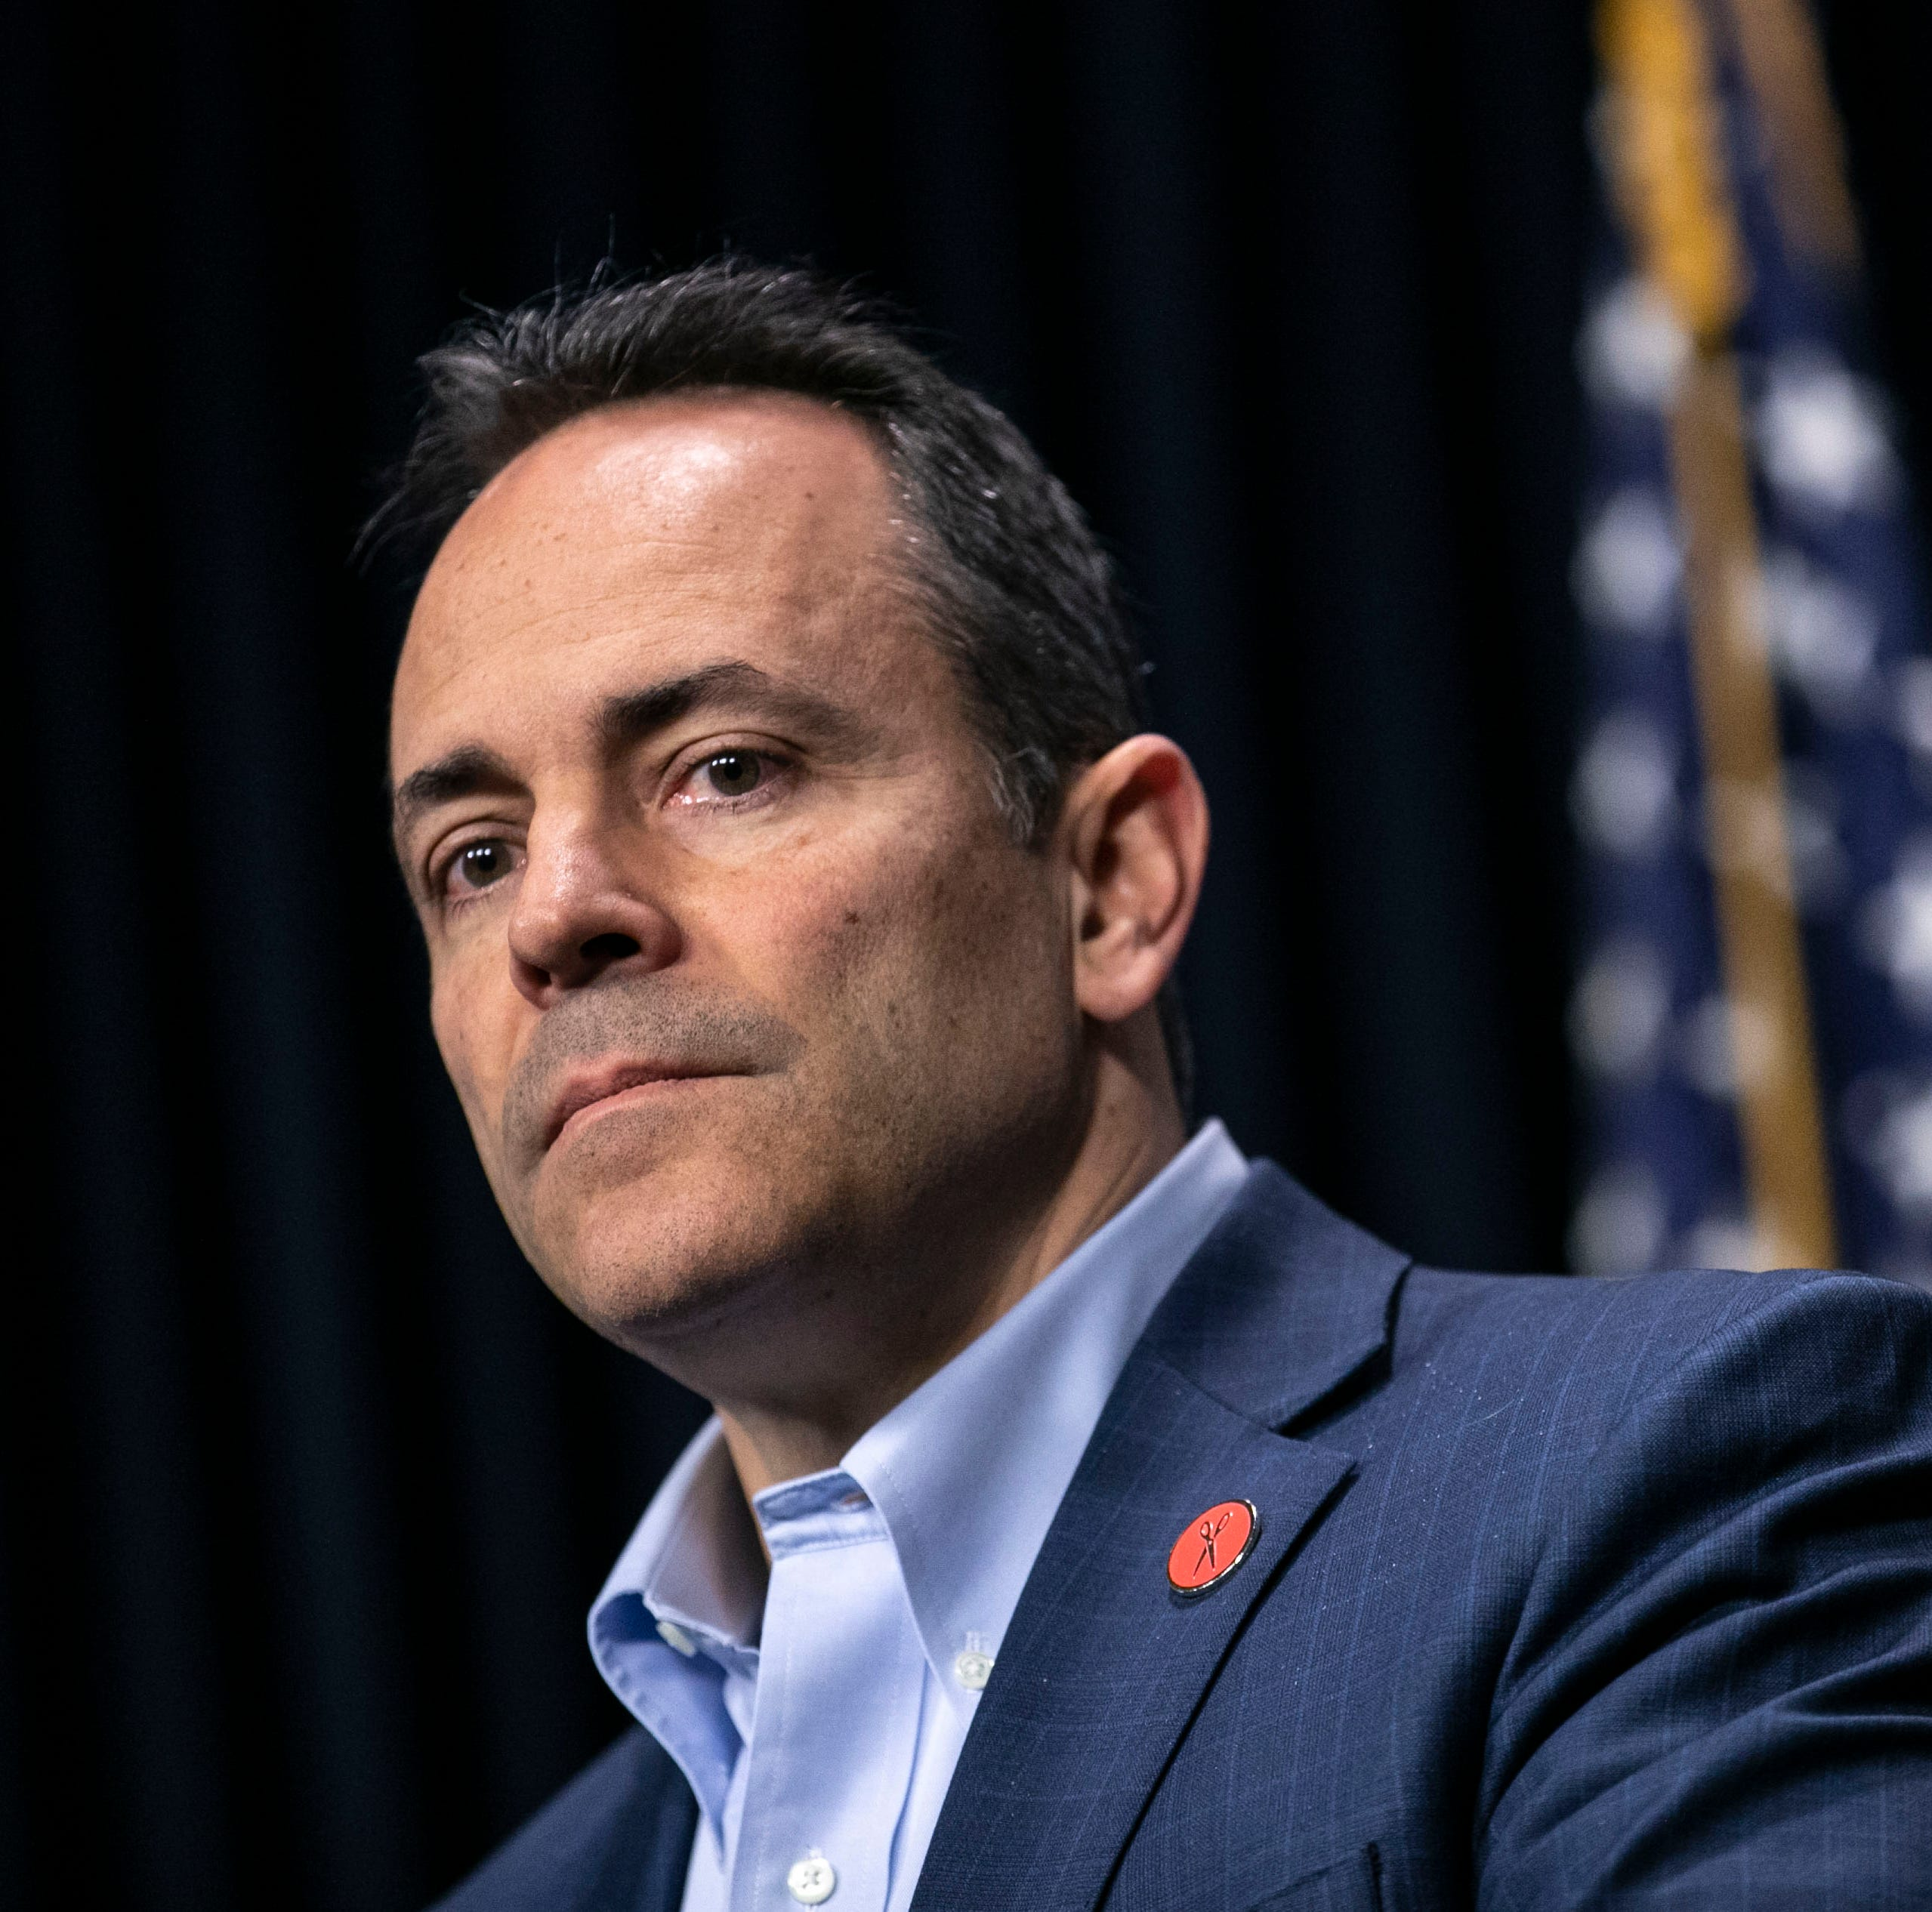 Bevin calls out those who judged Covington controversy too soon